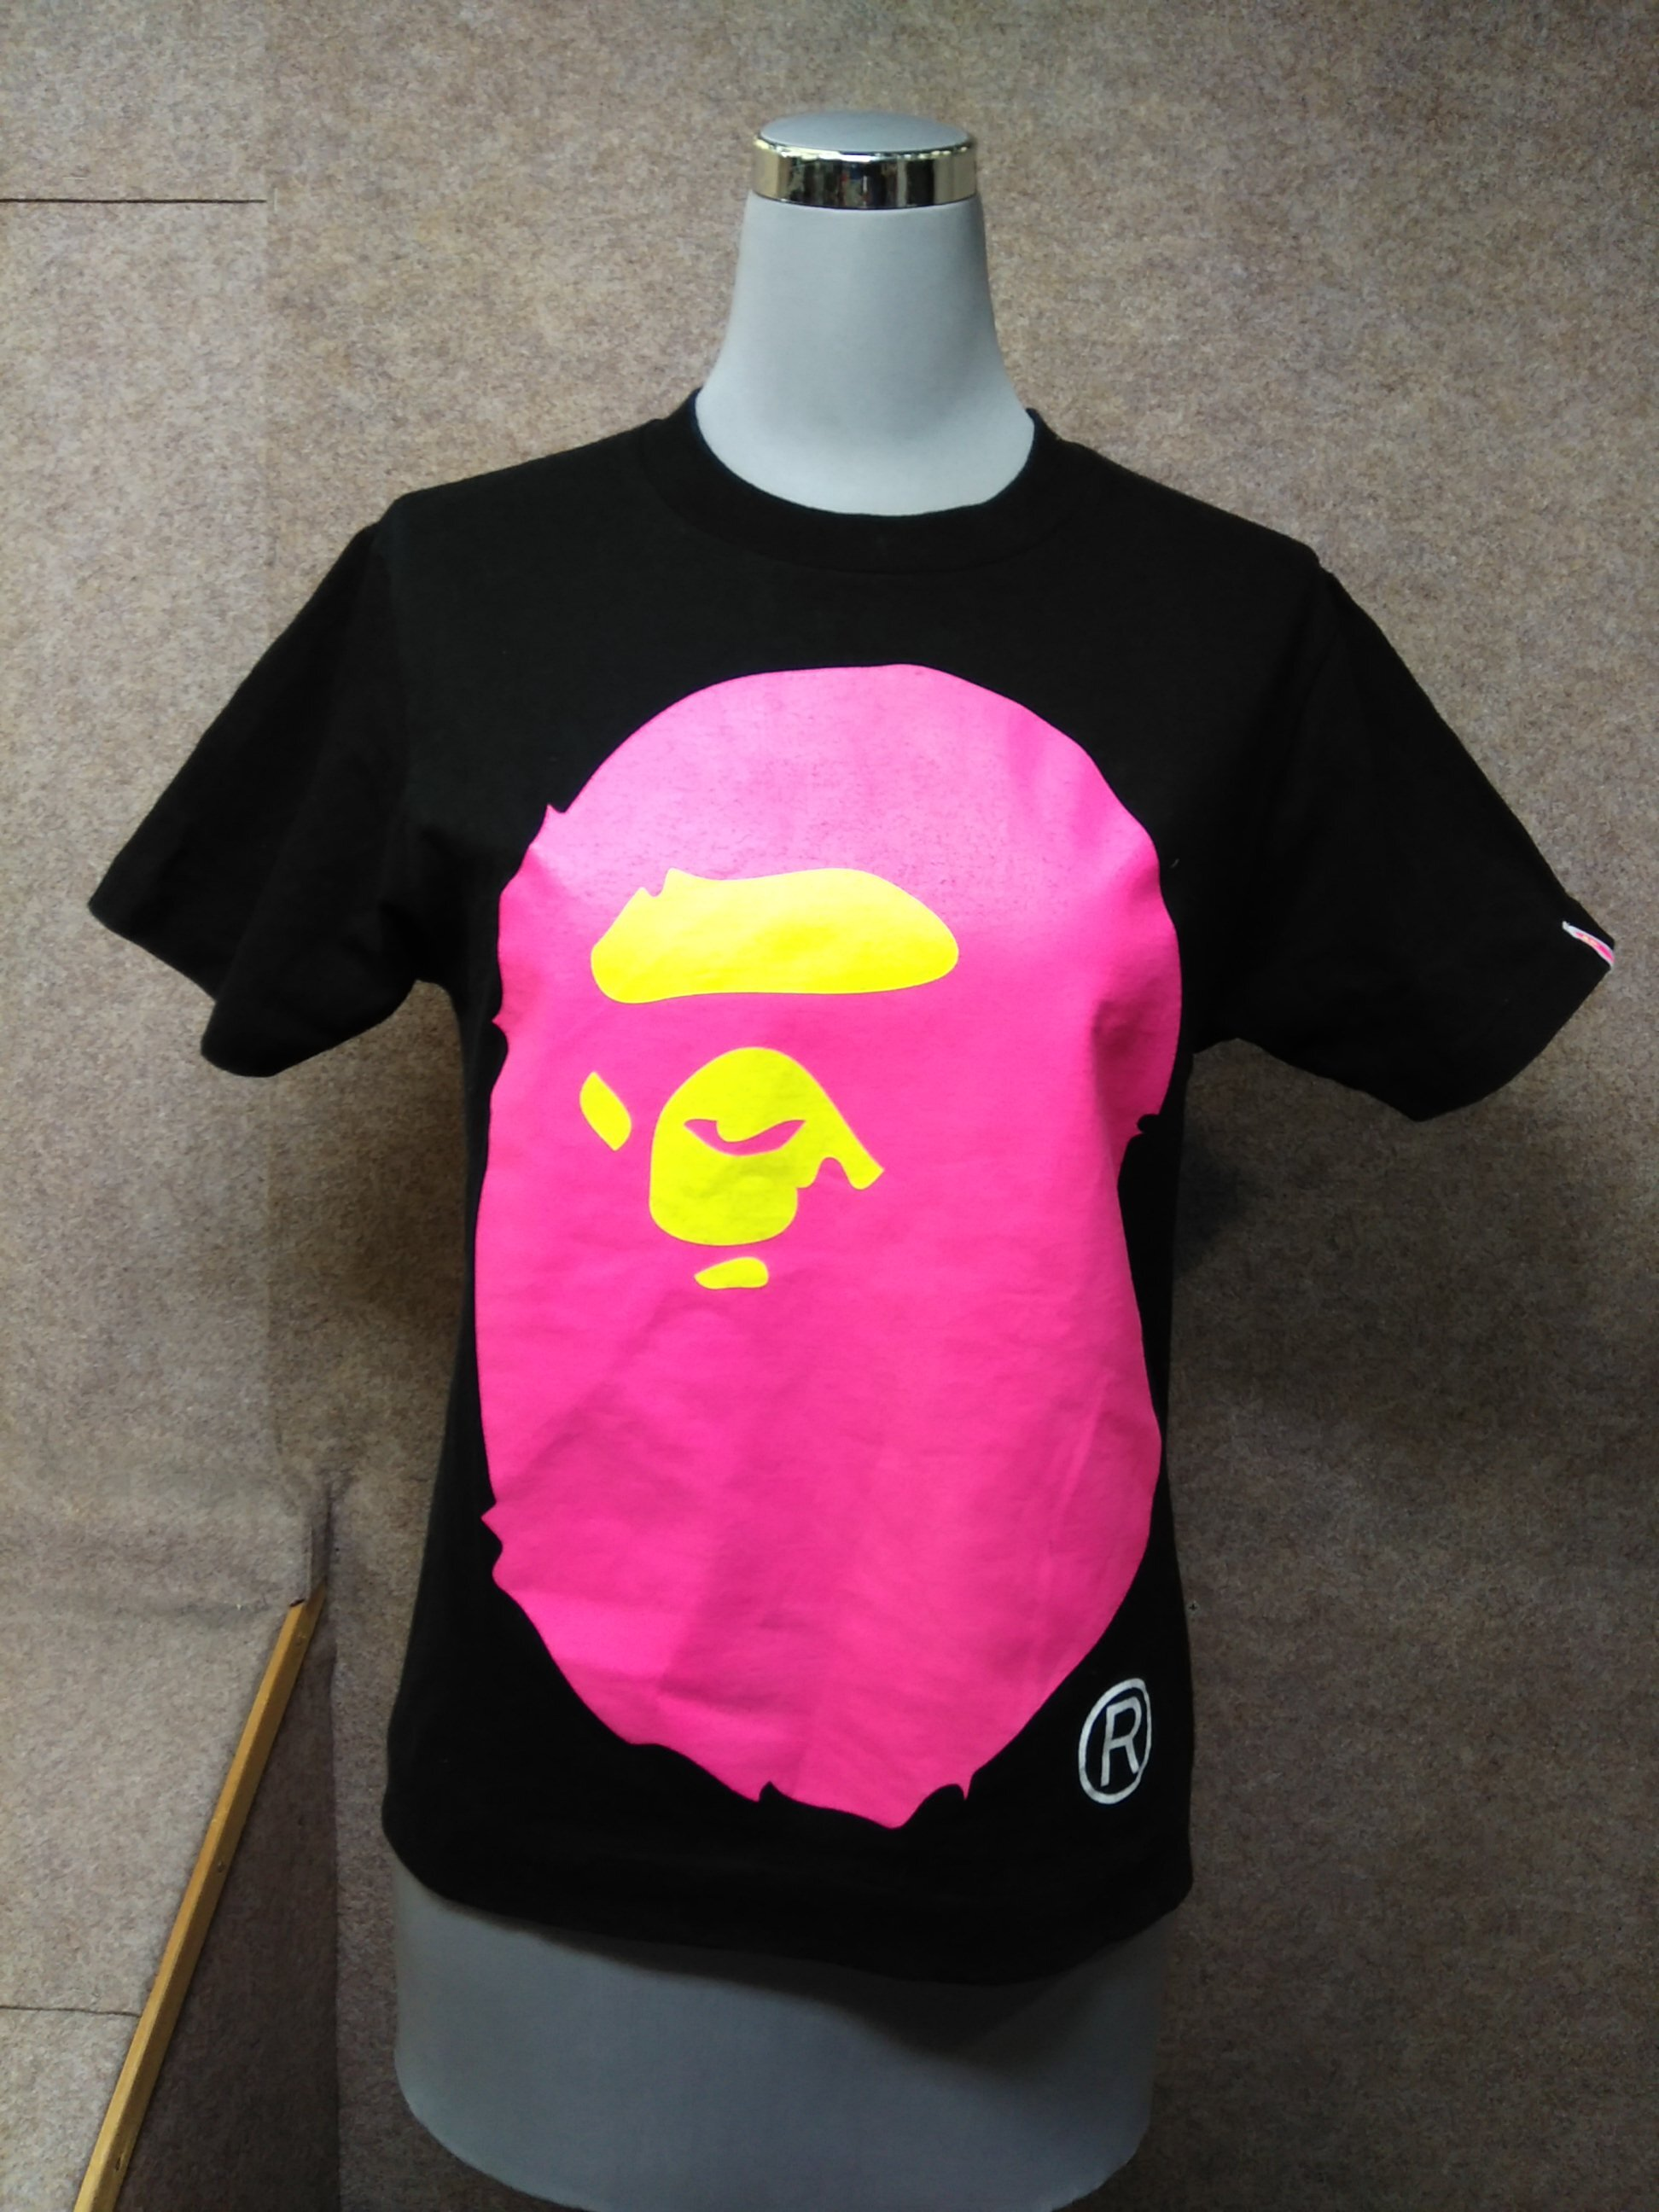 APEE by A BATHING APE Tシャツ S 黒 mu529e